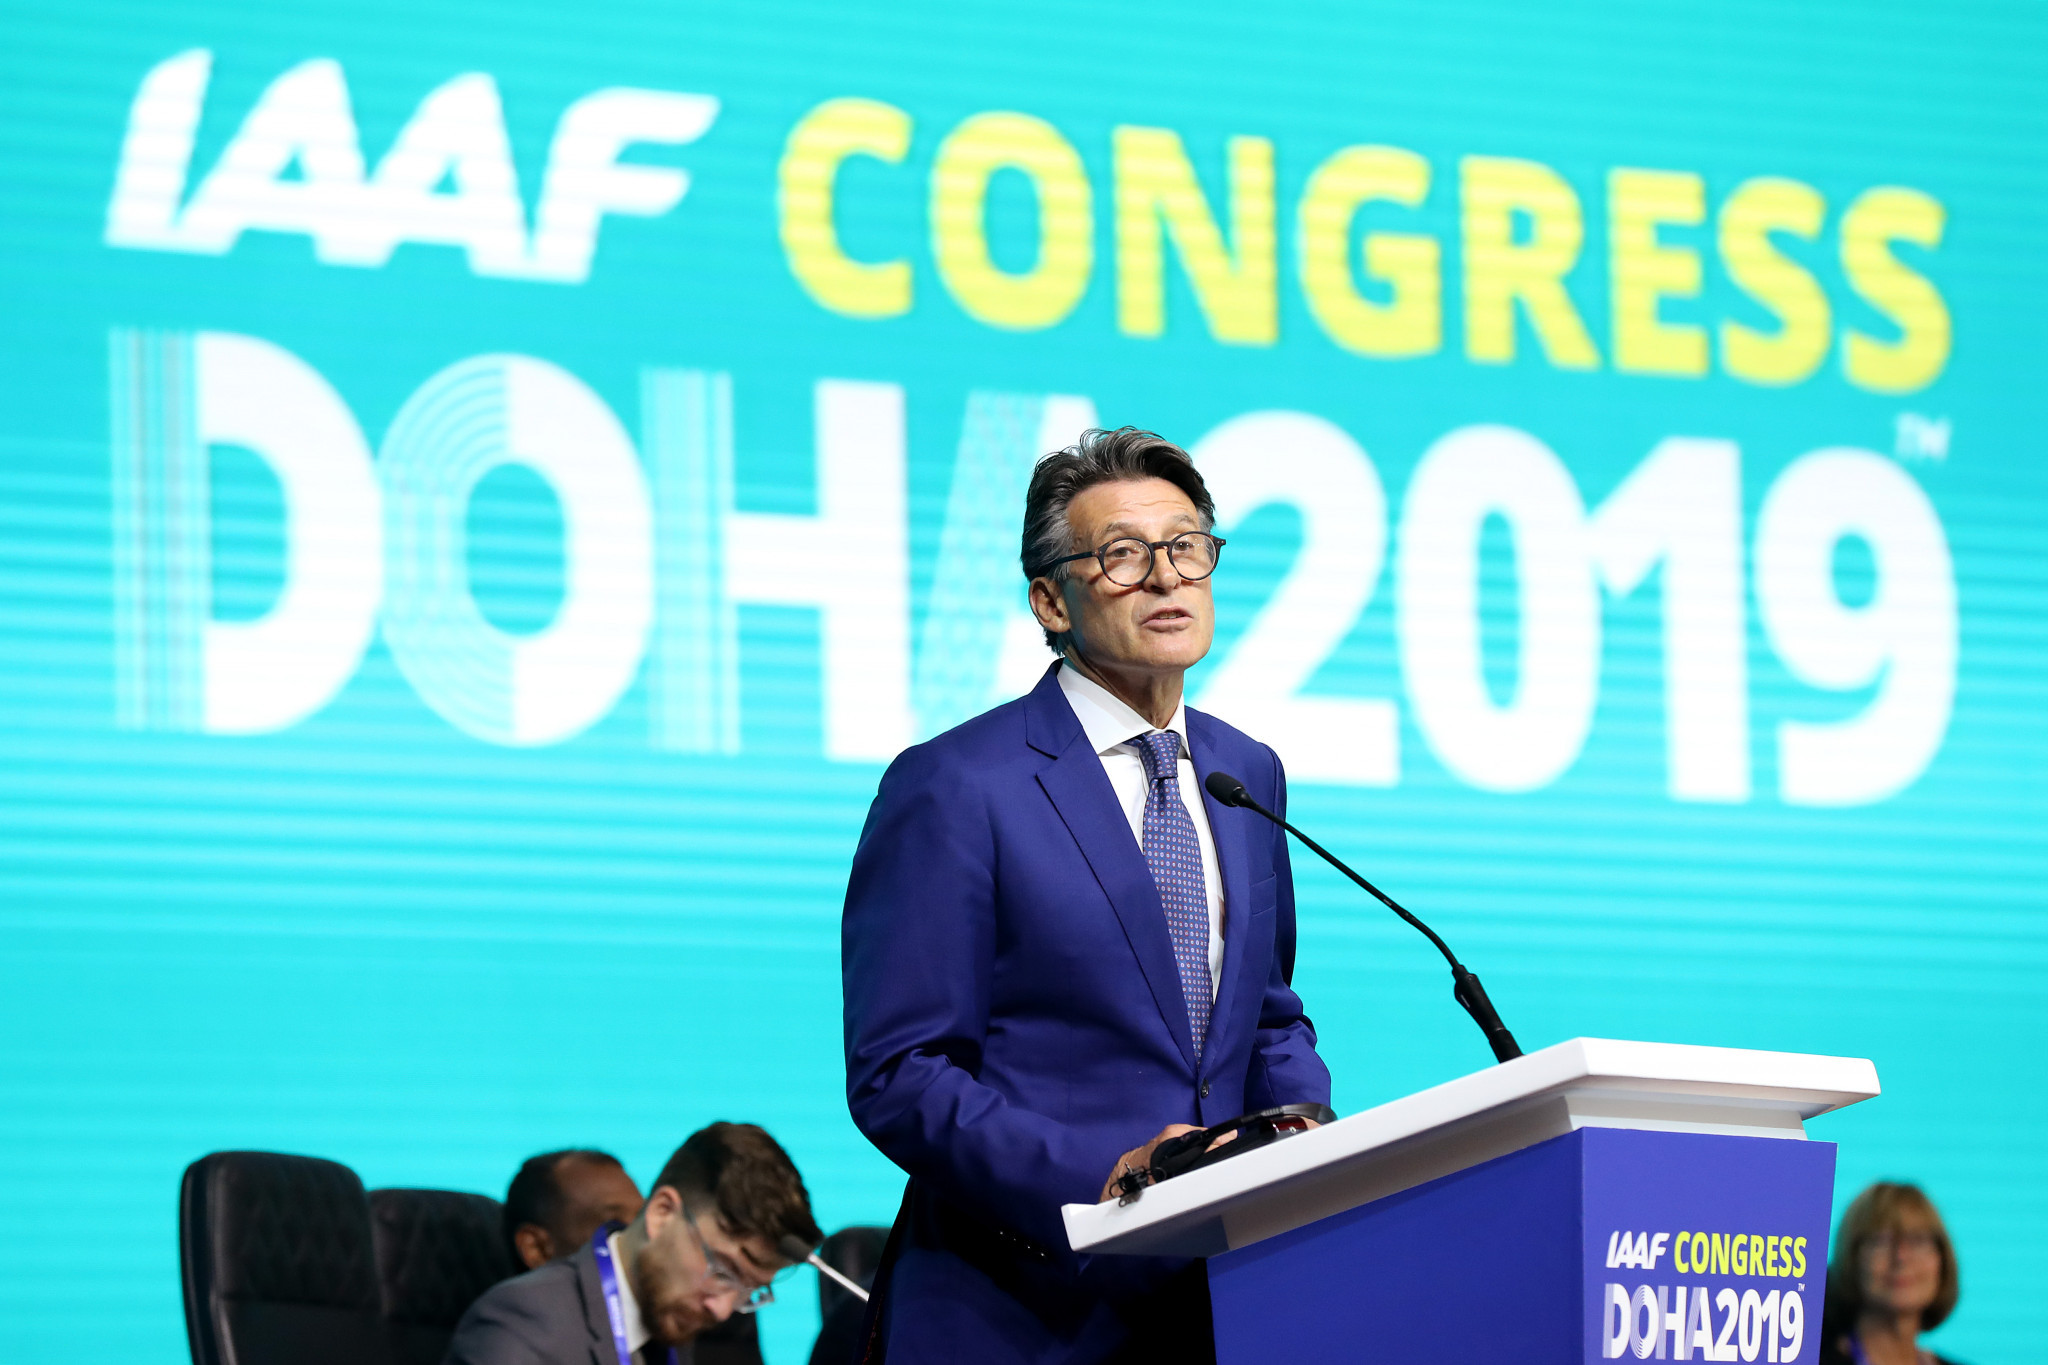 Sebastian Coe re-elected for second term as IAAF President on historic day for sport